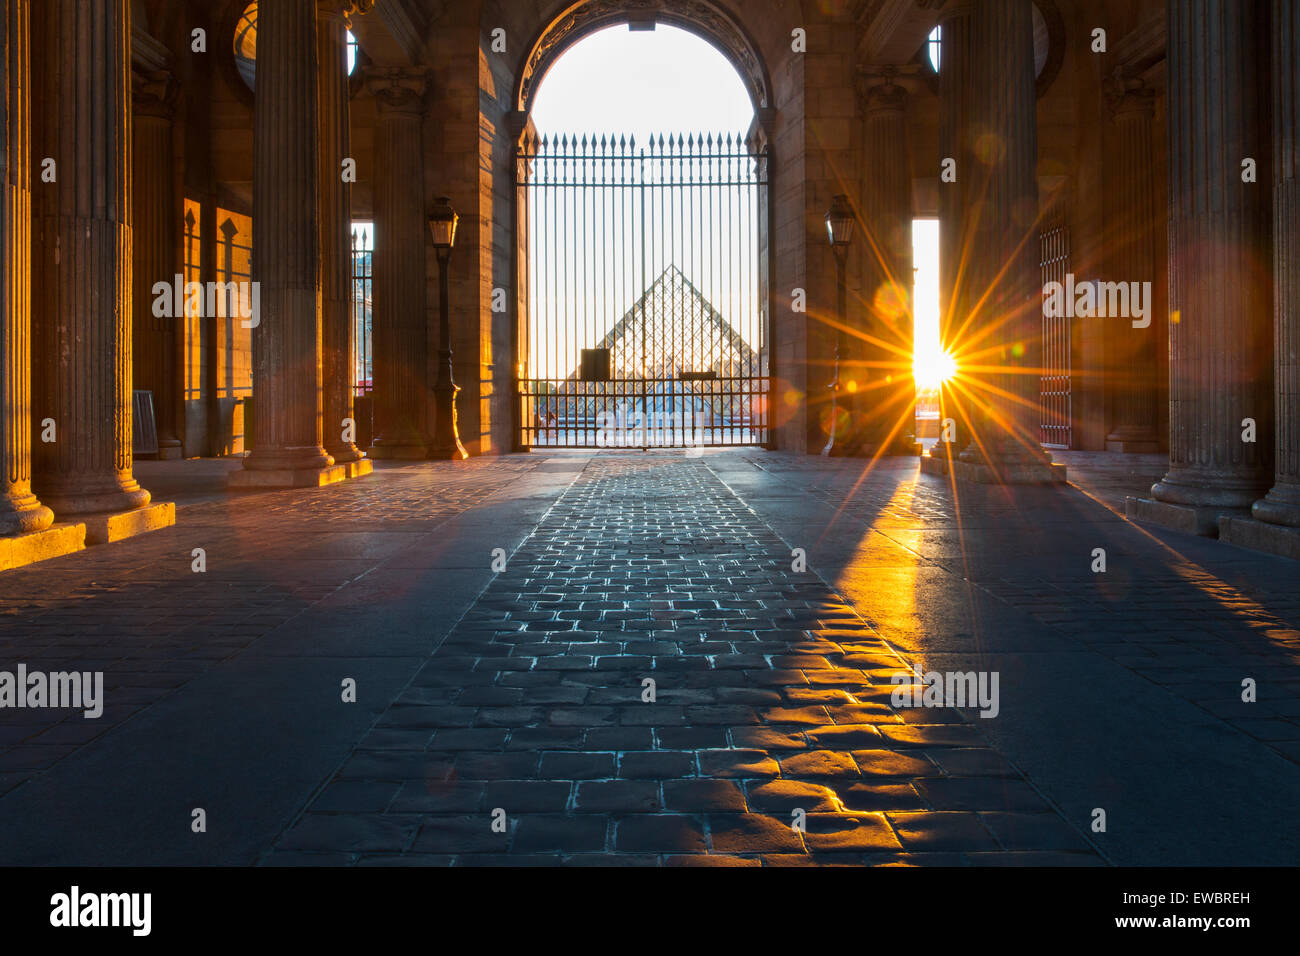 Sunset at gated entry to Musee du Louvre, Paris, France - Stock Image